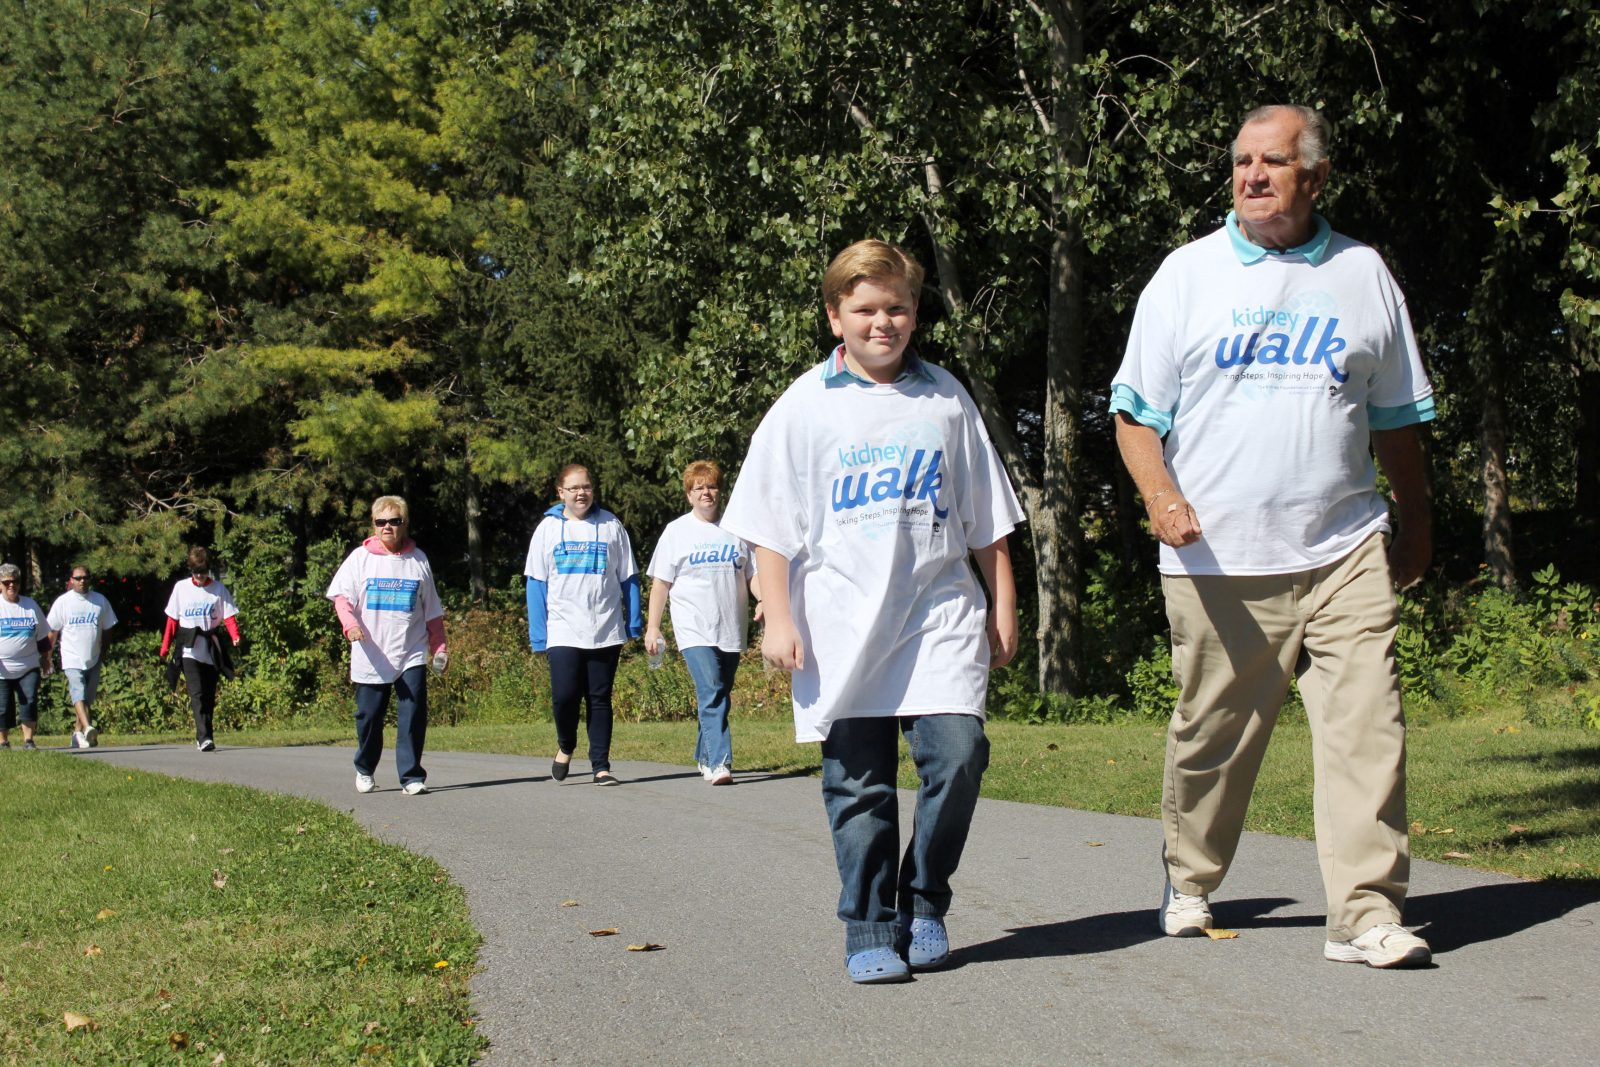 Dialysis patient marches with family at Kidney Walk